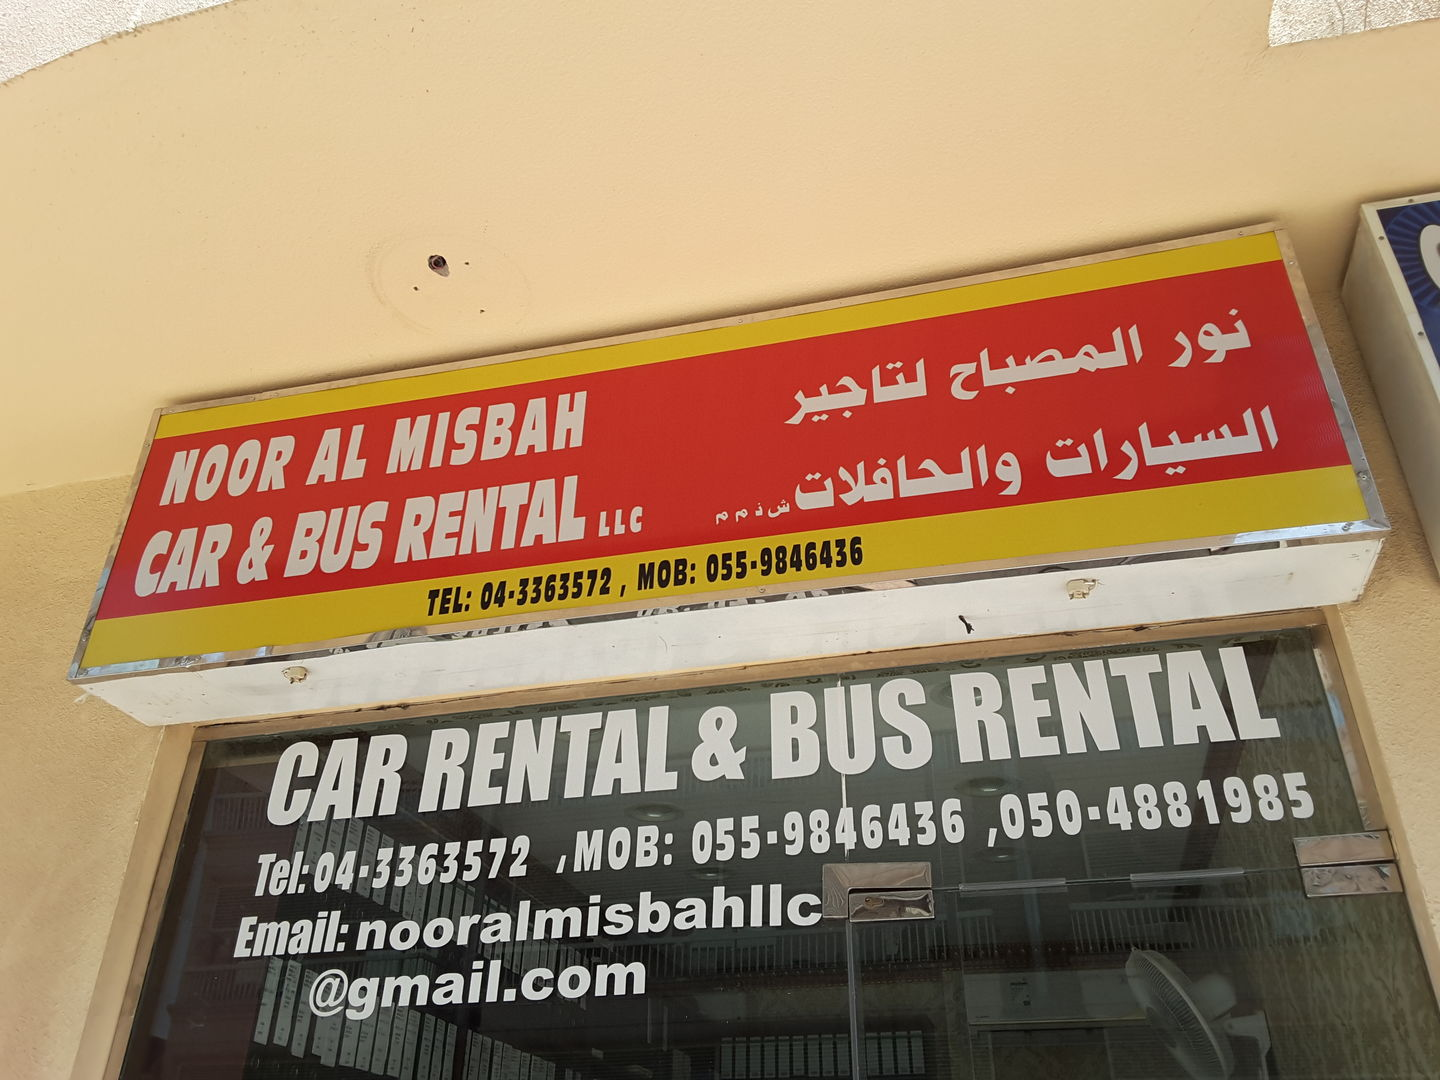 HiDubai-business-noor-al-misbah-car-bus-rental-transport-vehicle-services-car-rental-services-al-karama-dubai-2